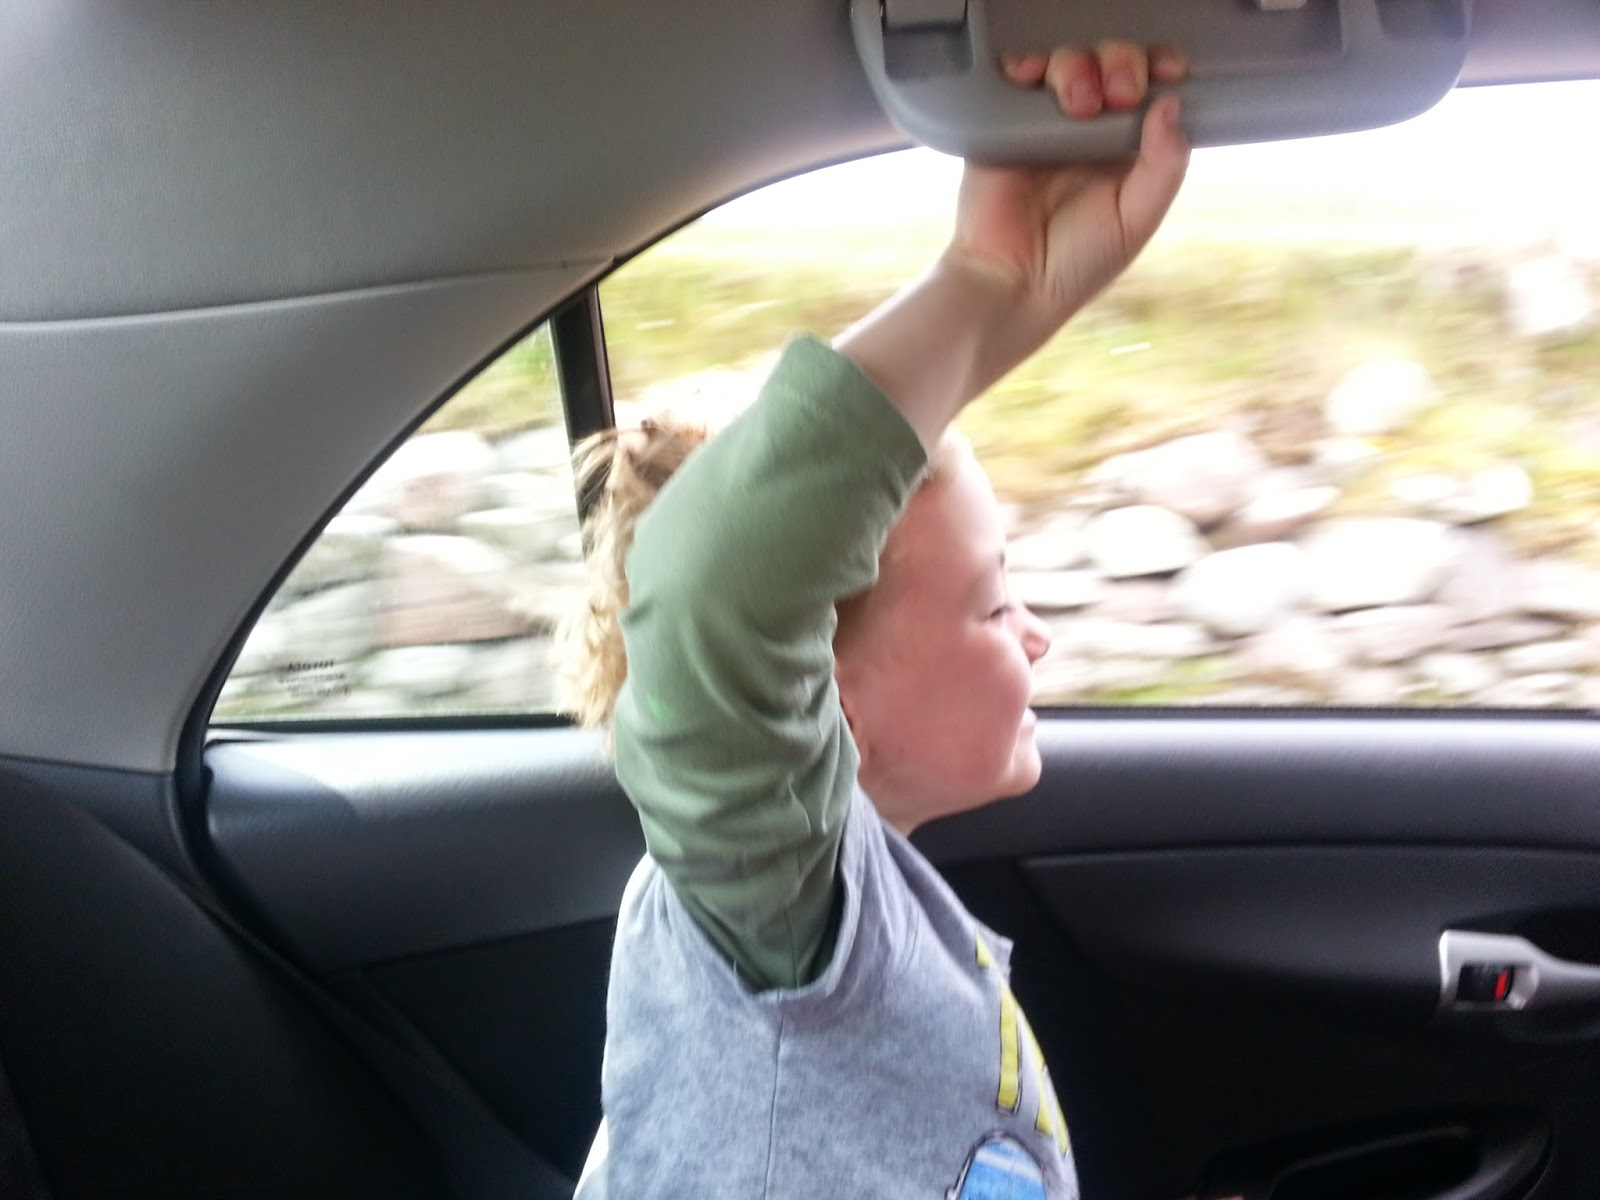 young boy in car feeling the rush of the wind across his face as he sticks his head out the window